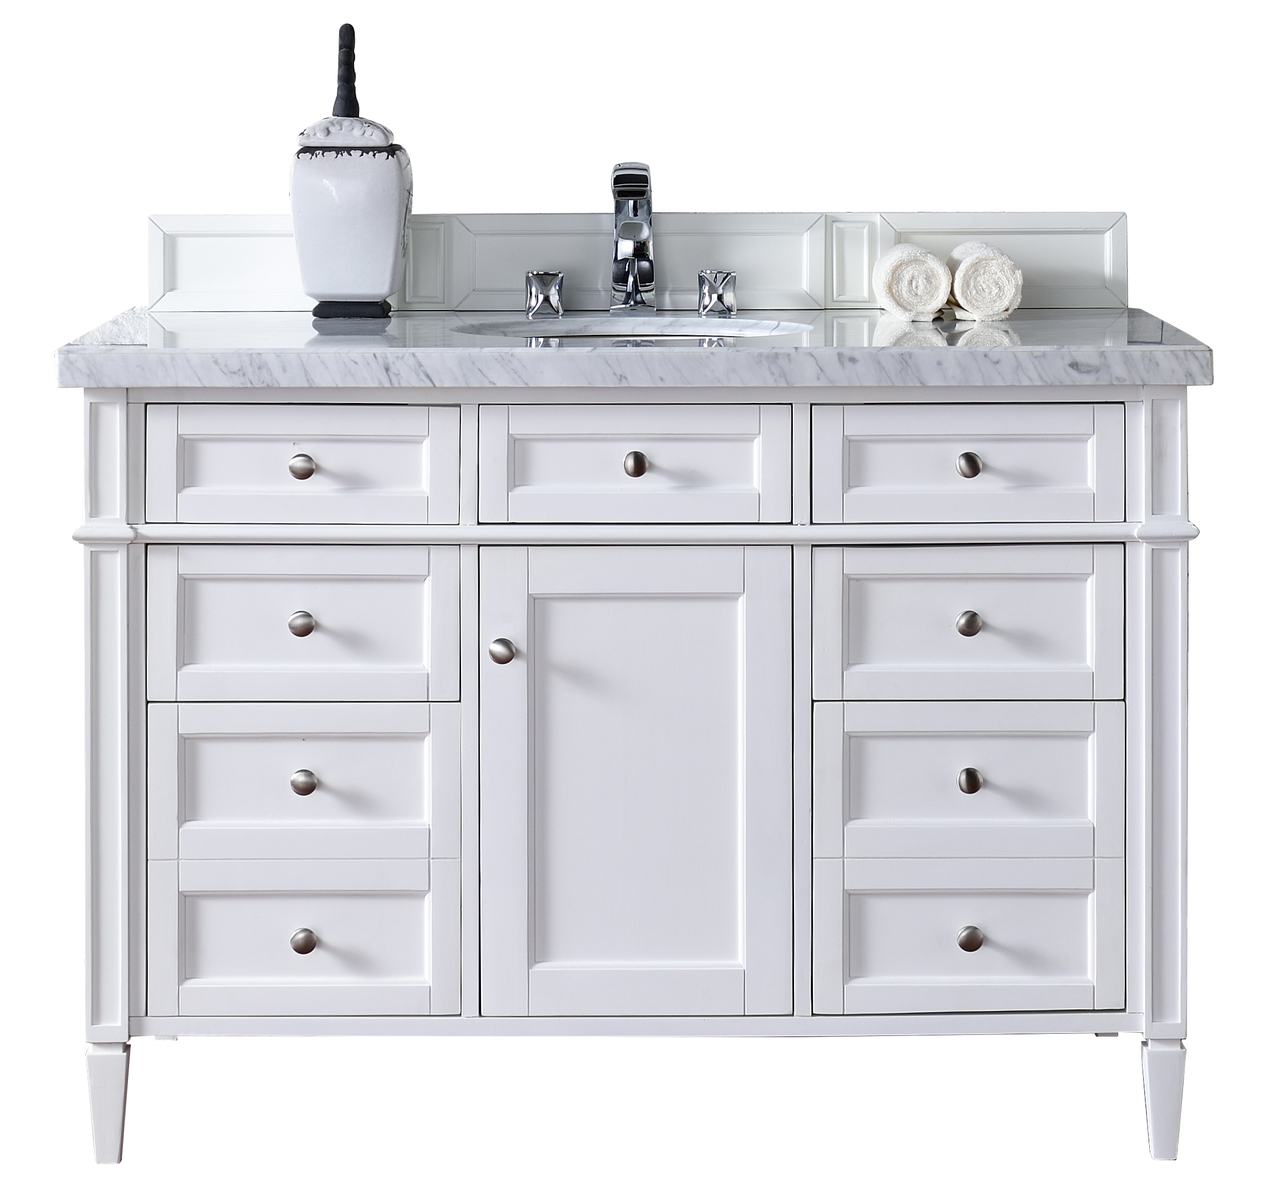 Contemporary 48 inch single bathroom vanity white finish for Bathroom vanity cabinets